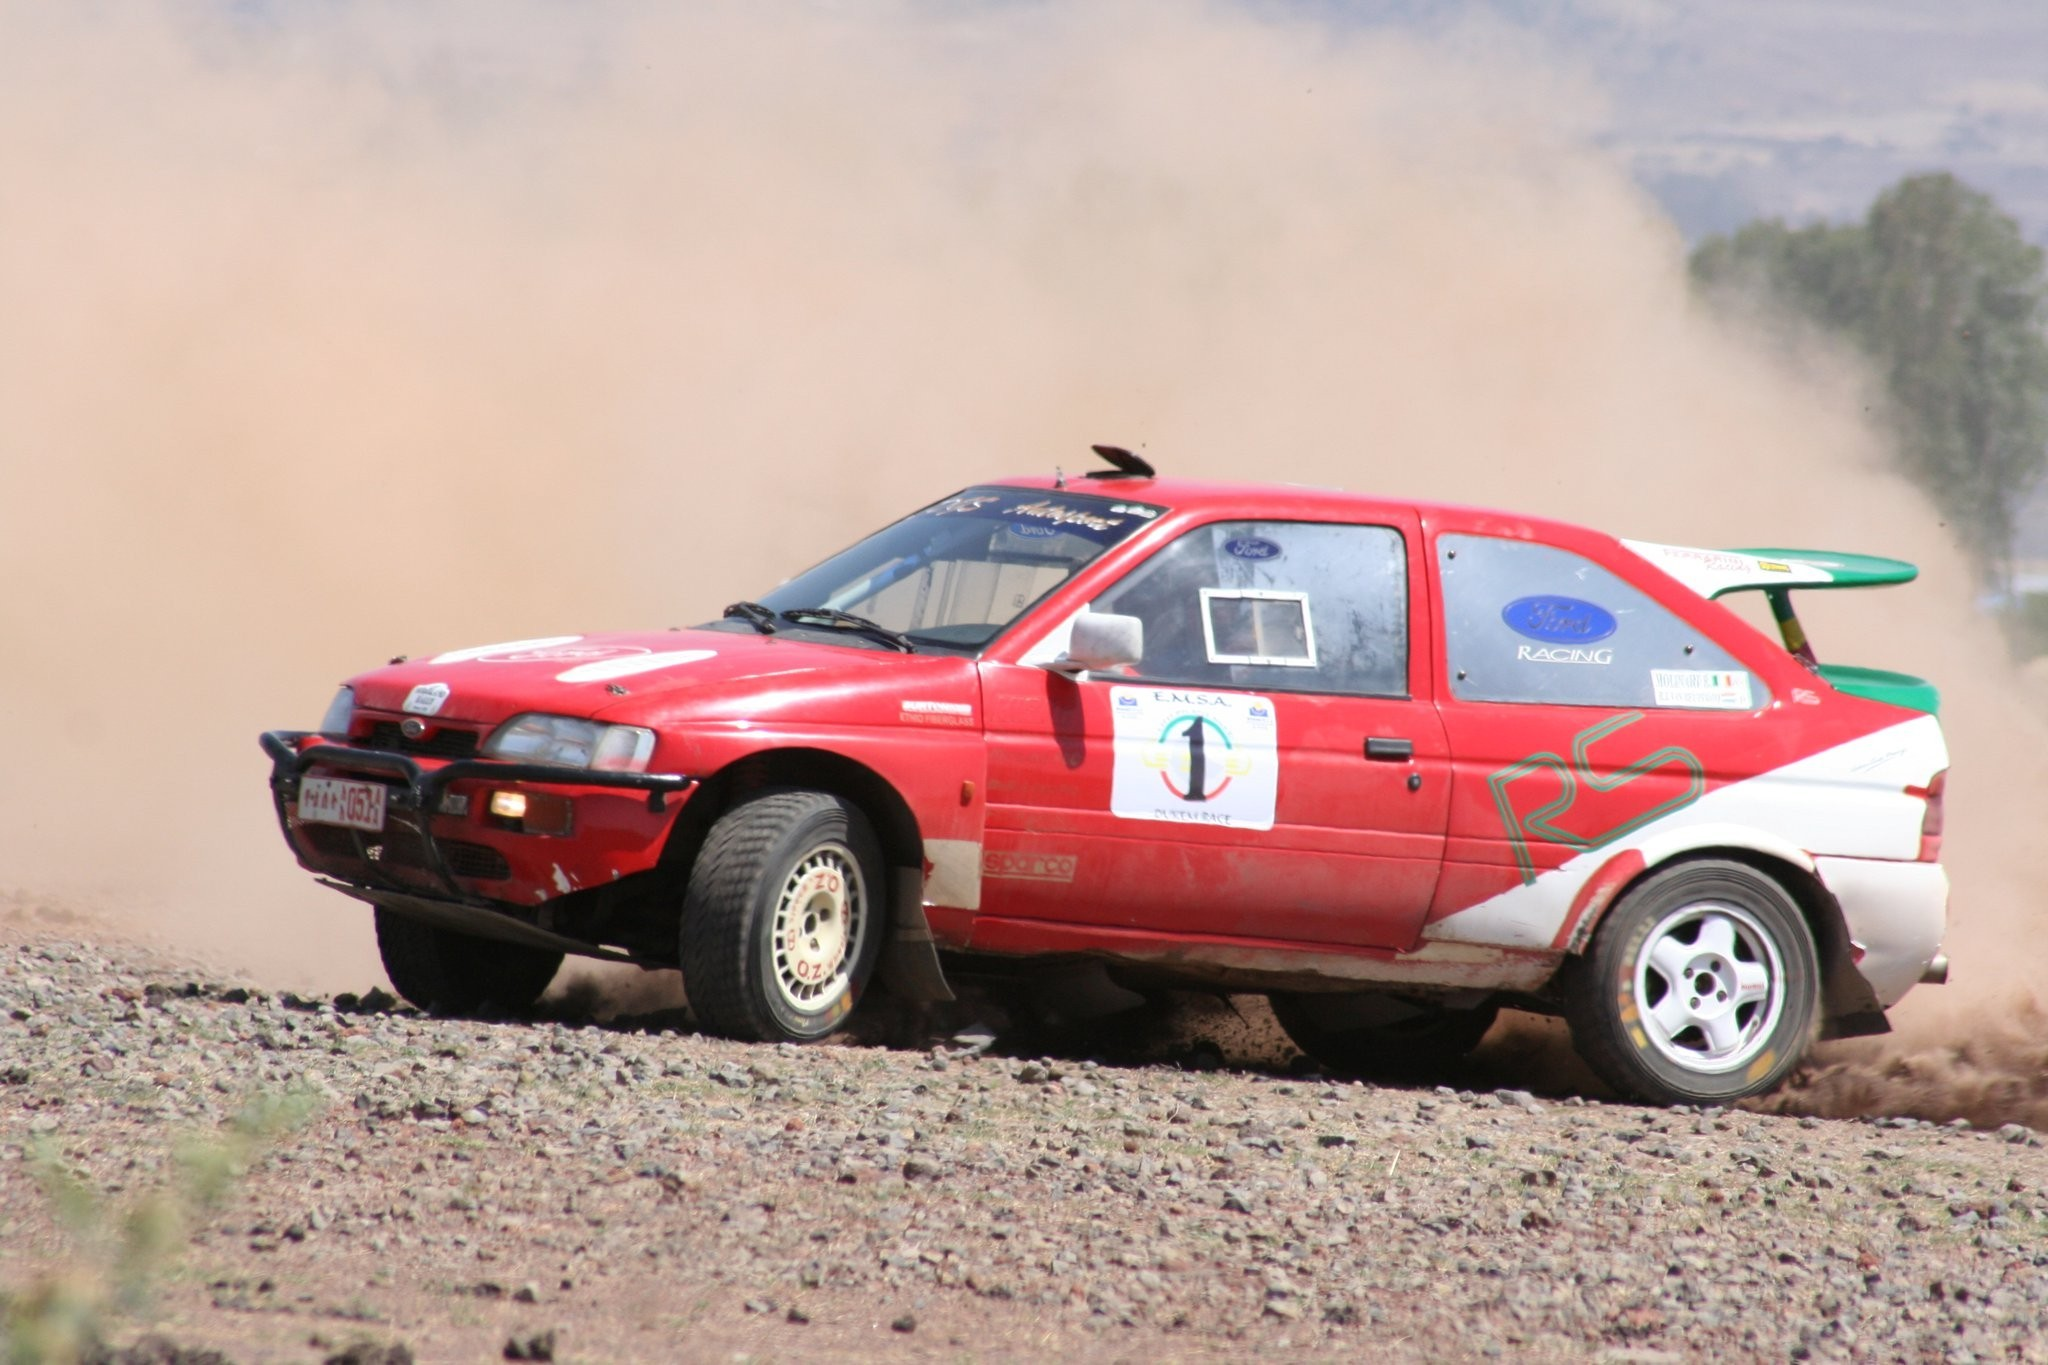 dust rally vehicles racing HD Wallpaper